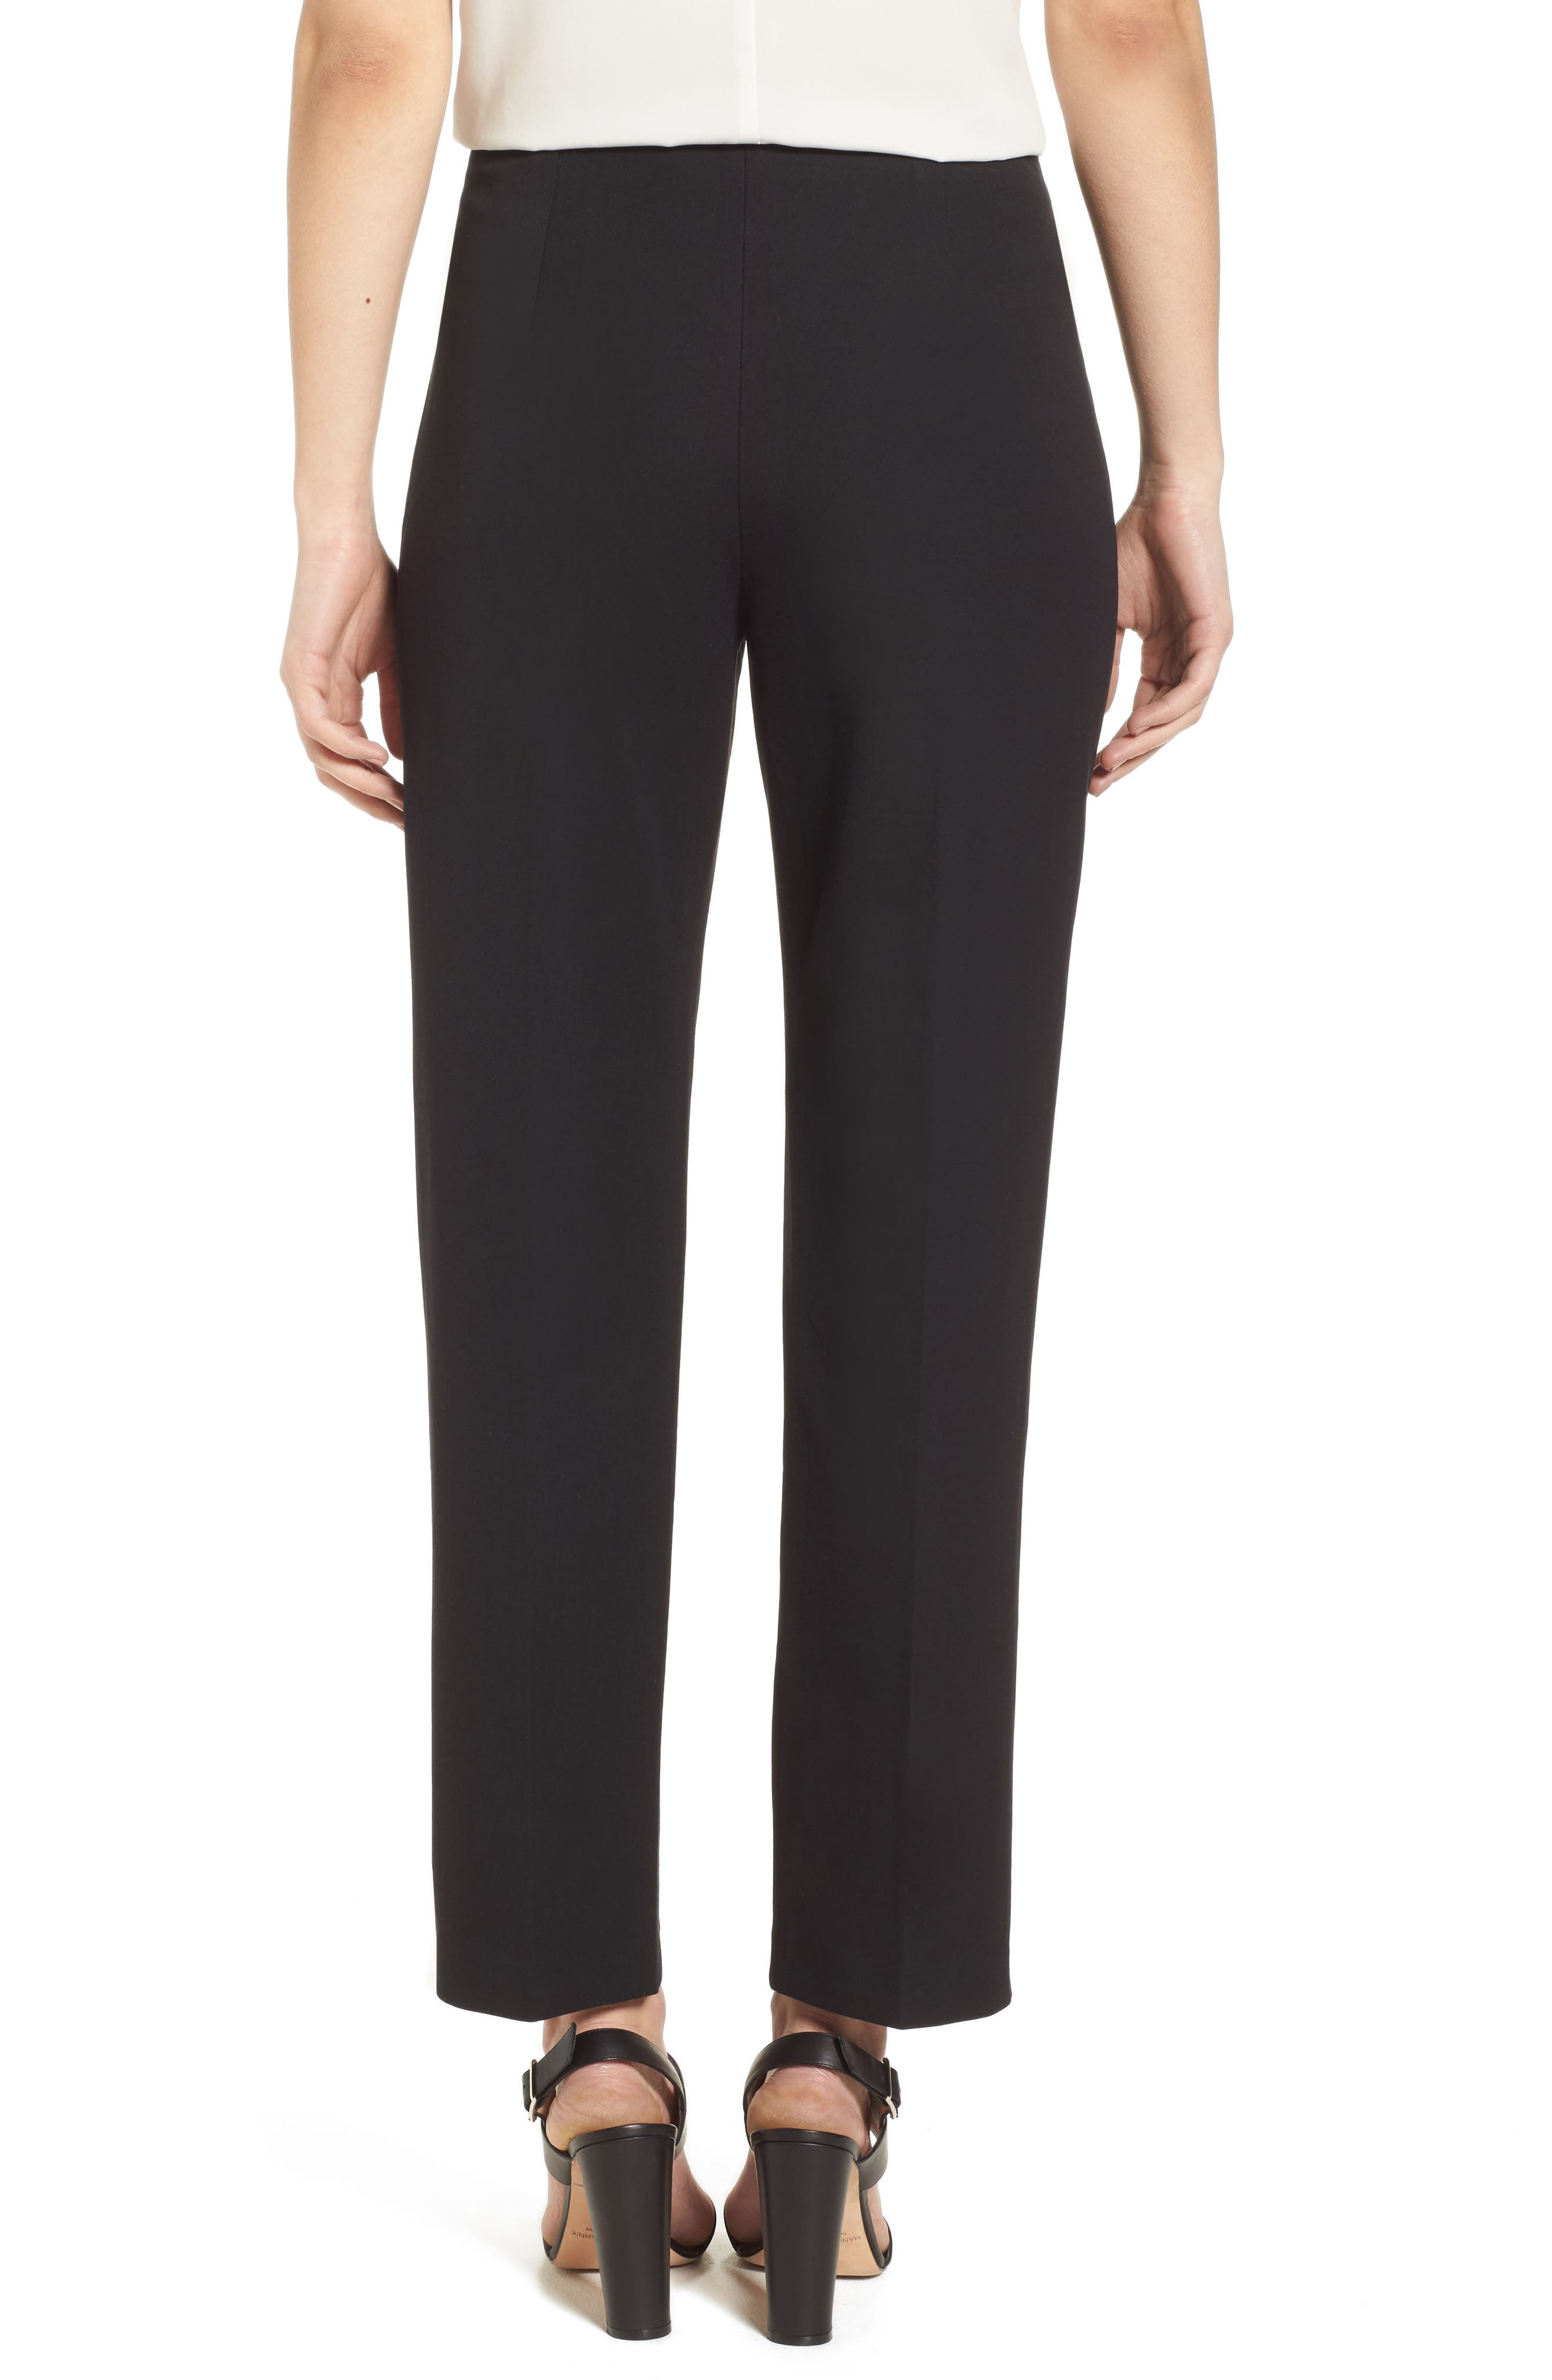 MING WANG, Woven Slim Ankle Pants, Alternate thumbnail 2, color, BLACK